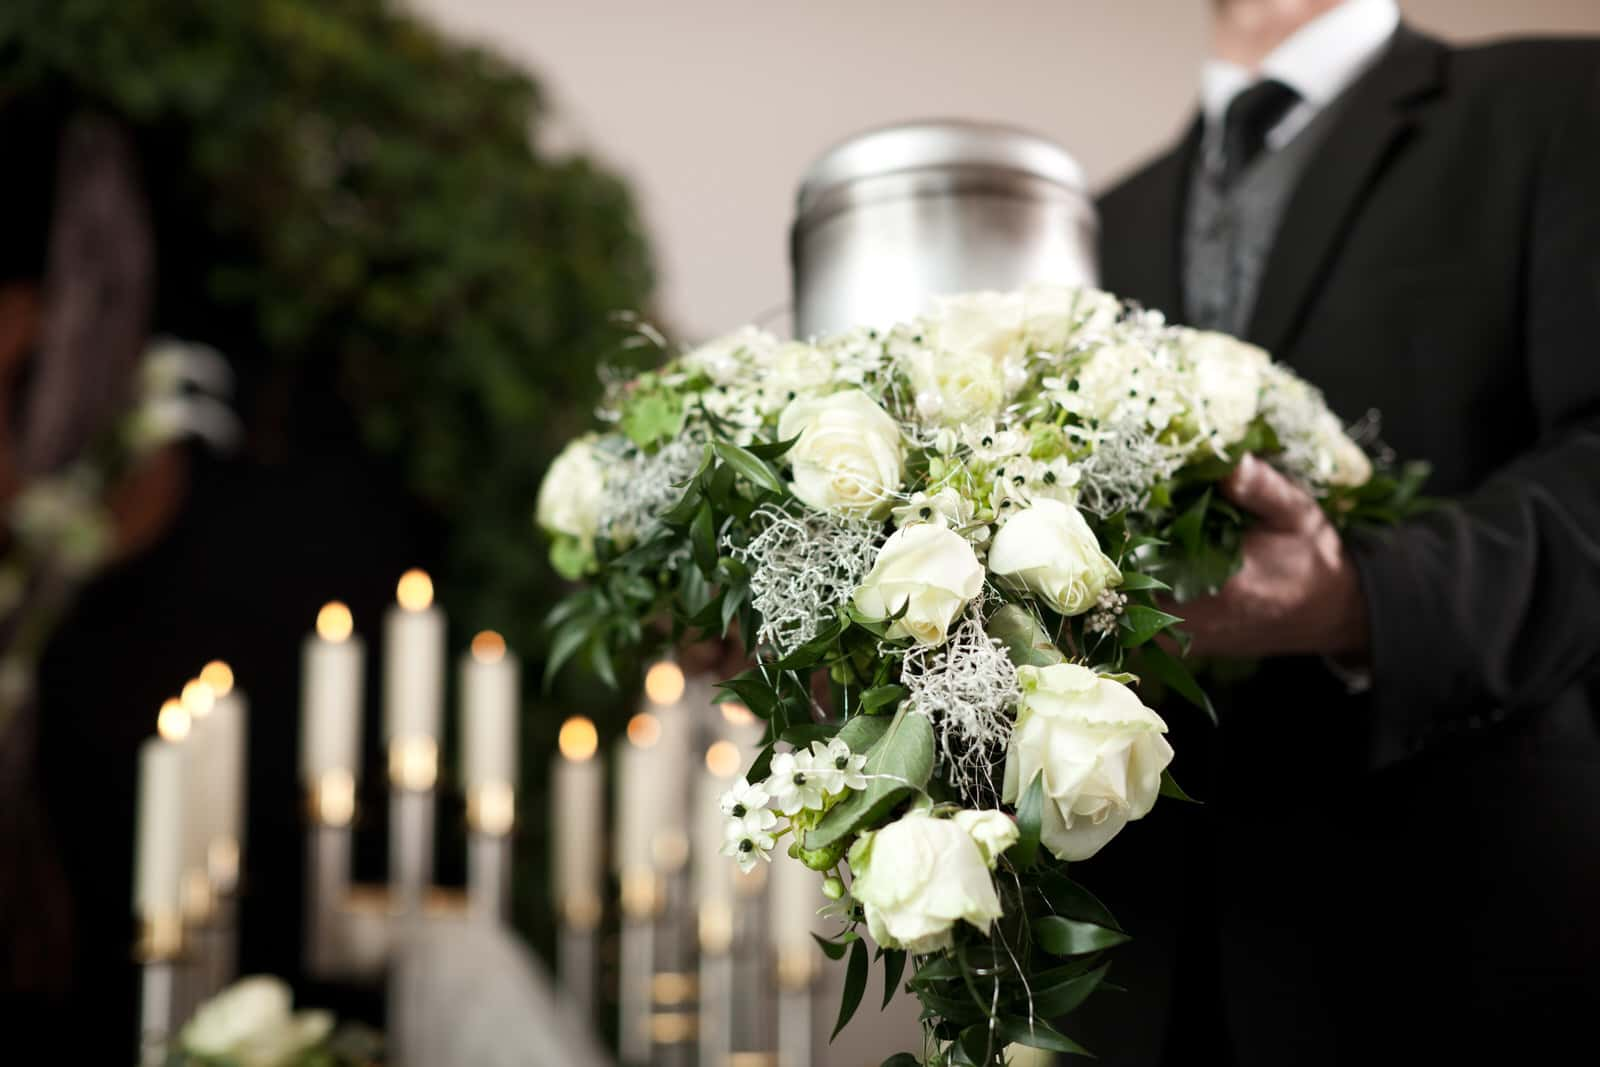 How much does cremation cost? At Simply, it's roughly $1,000, much below the national average.